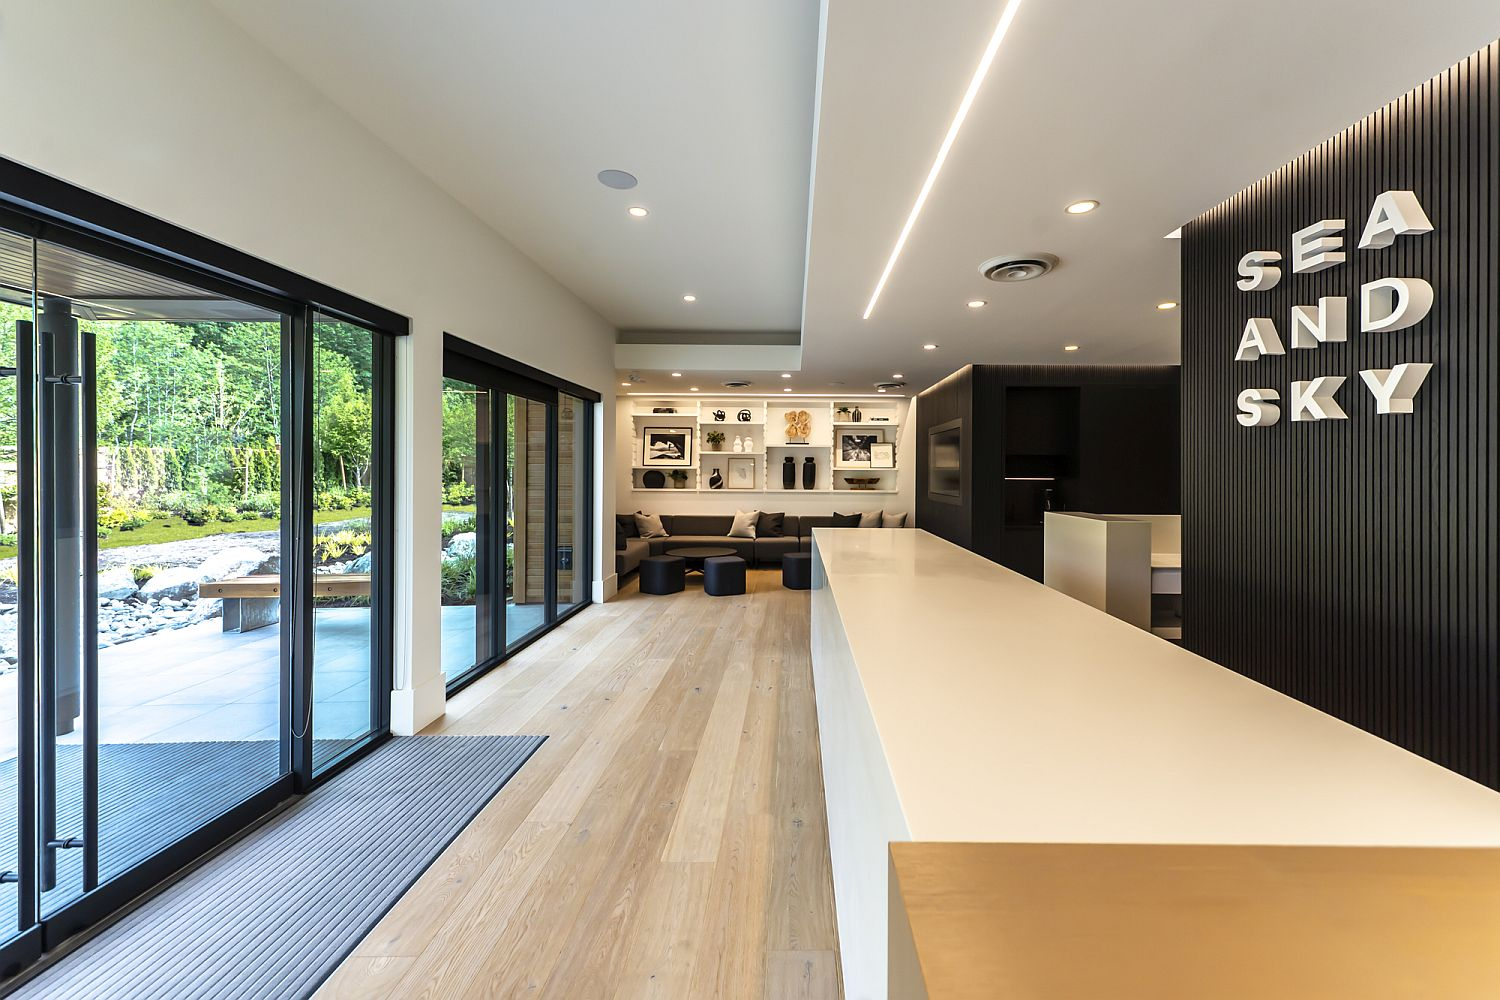 Kitchen-and-interior-that-is-connected-with-the-deck-outside